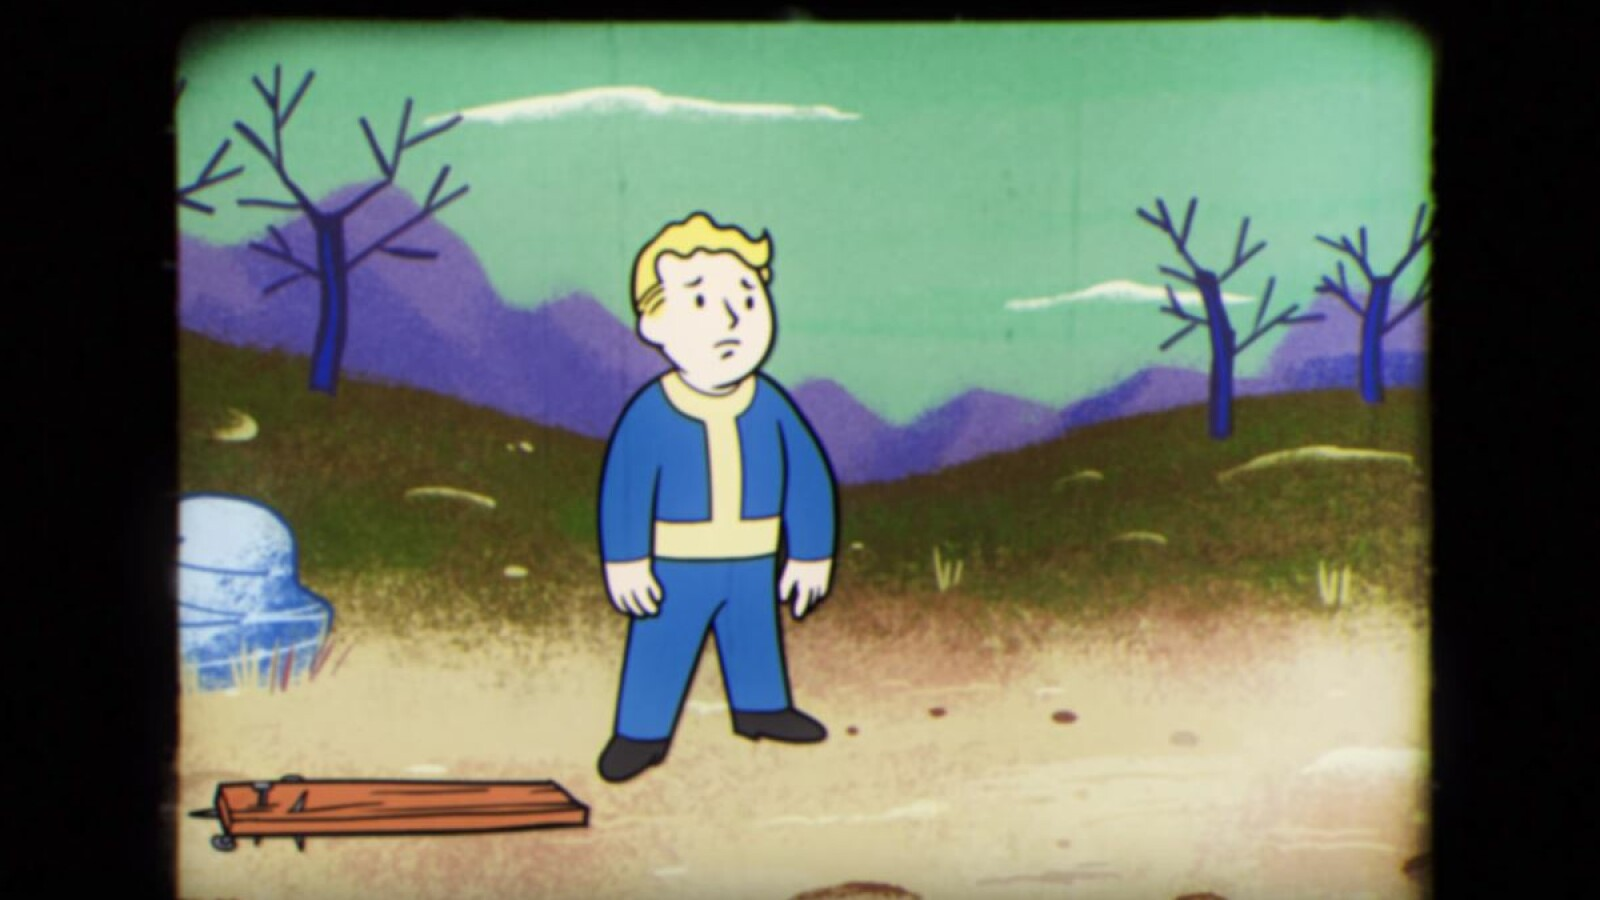 Fallout 76: PC version is not displayed on Steam